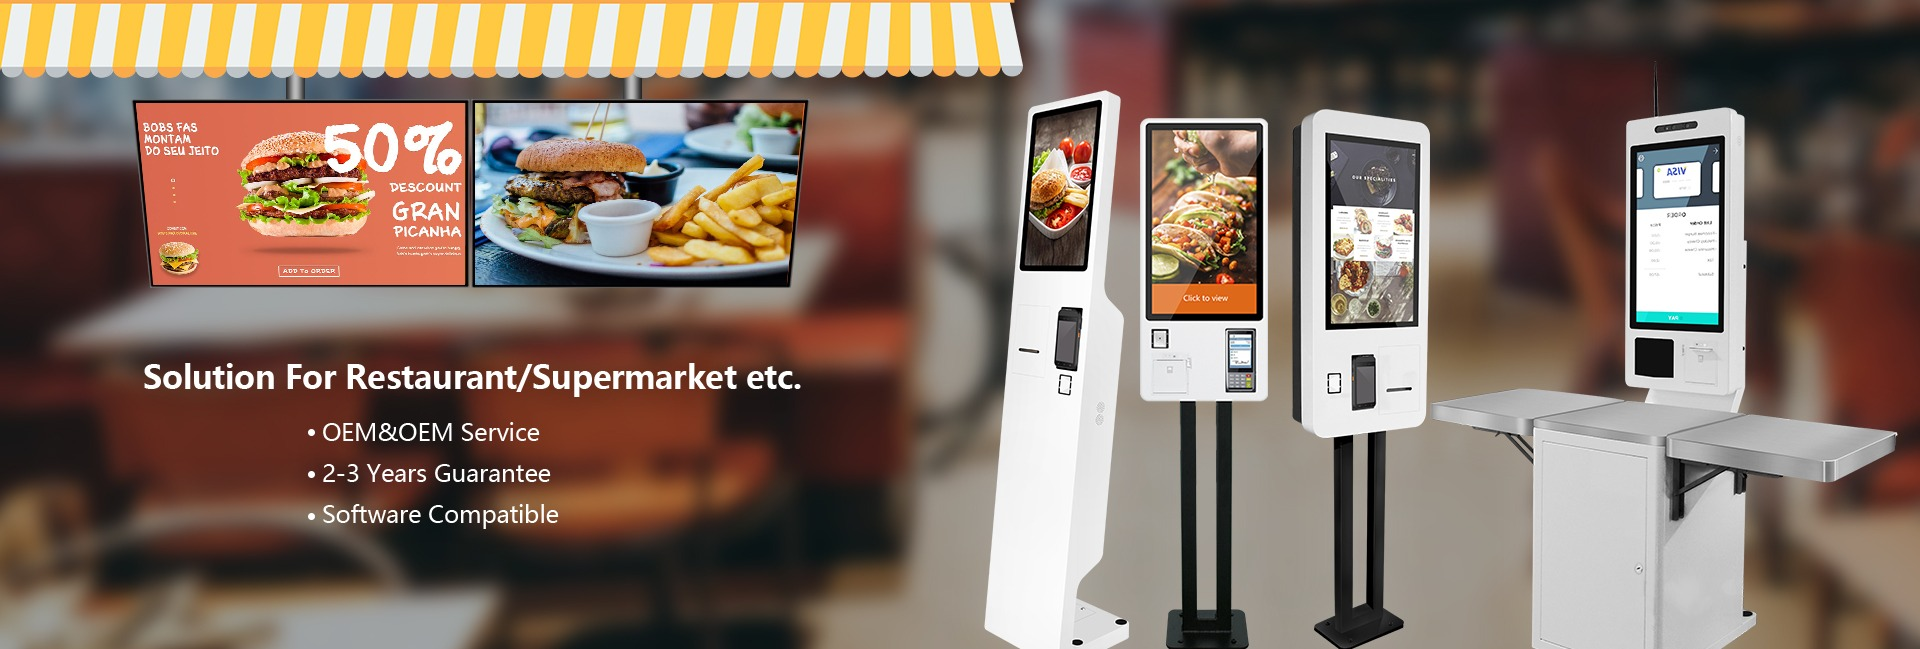 best food delivery app uk Digital Screens and self order kiosk